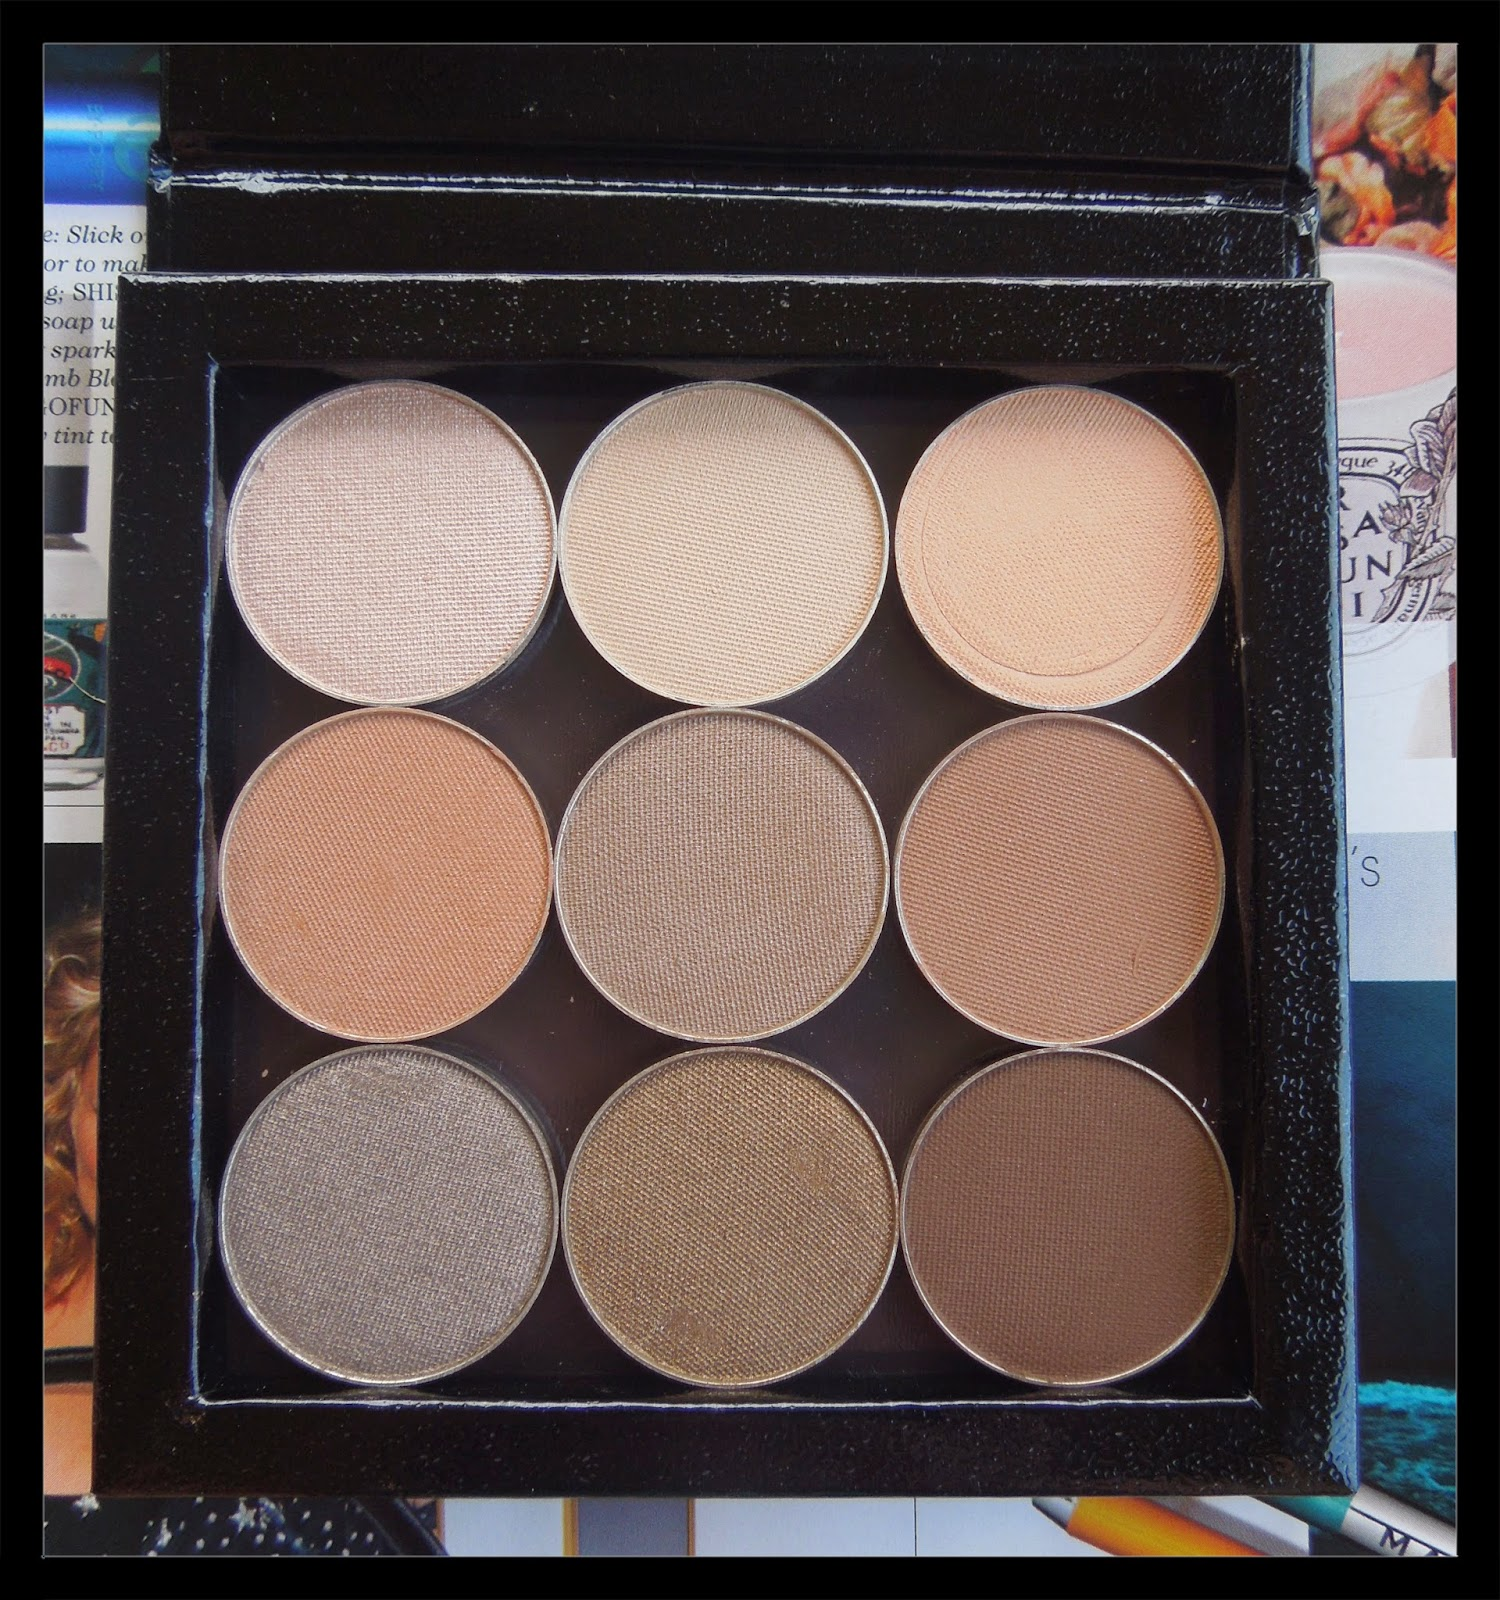 I have only a few MAC shadows, crazy I know. And from what I've heard, many people prefer Makeup Geek shadows to MAC ...